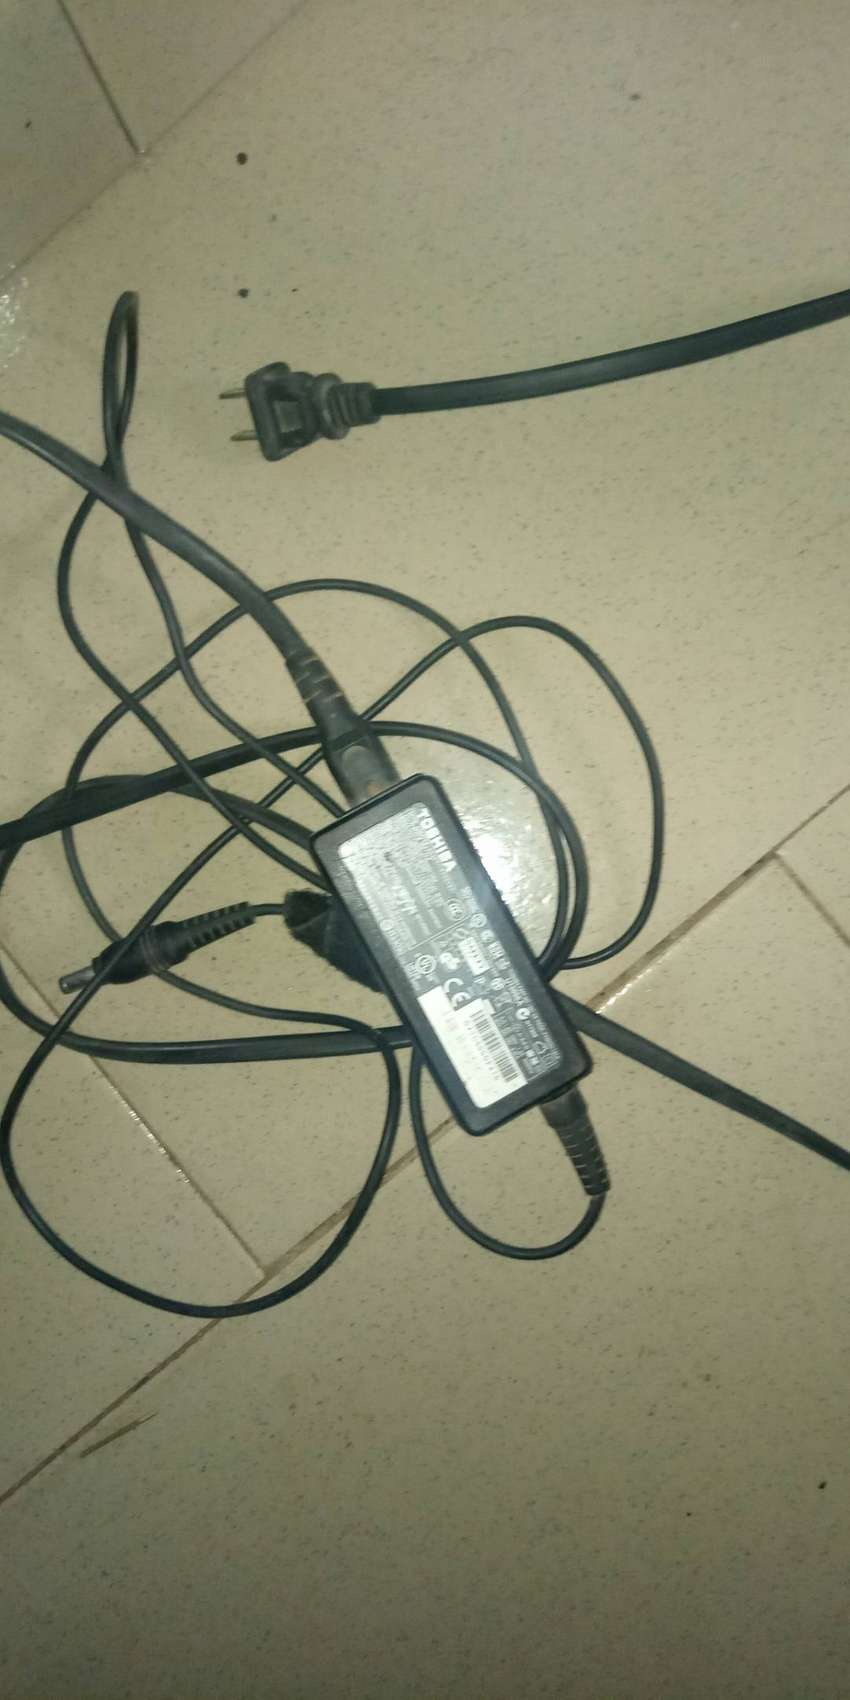 Toshiba laptop charger 0